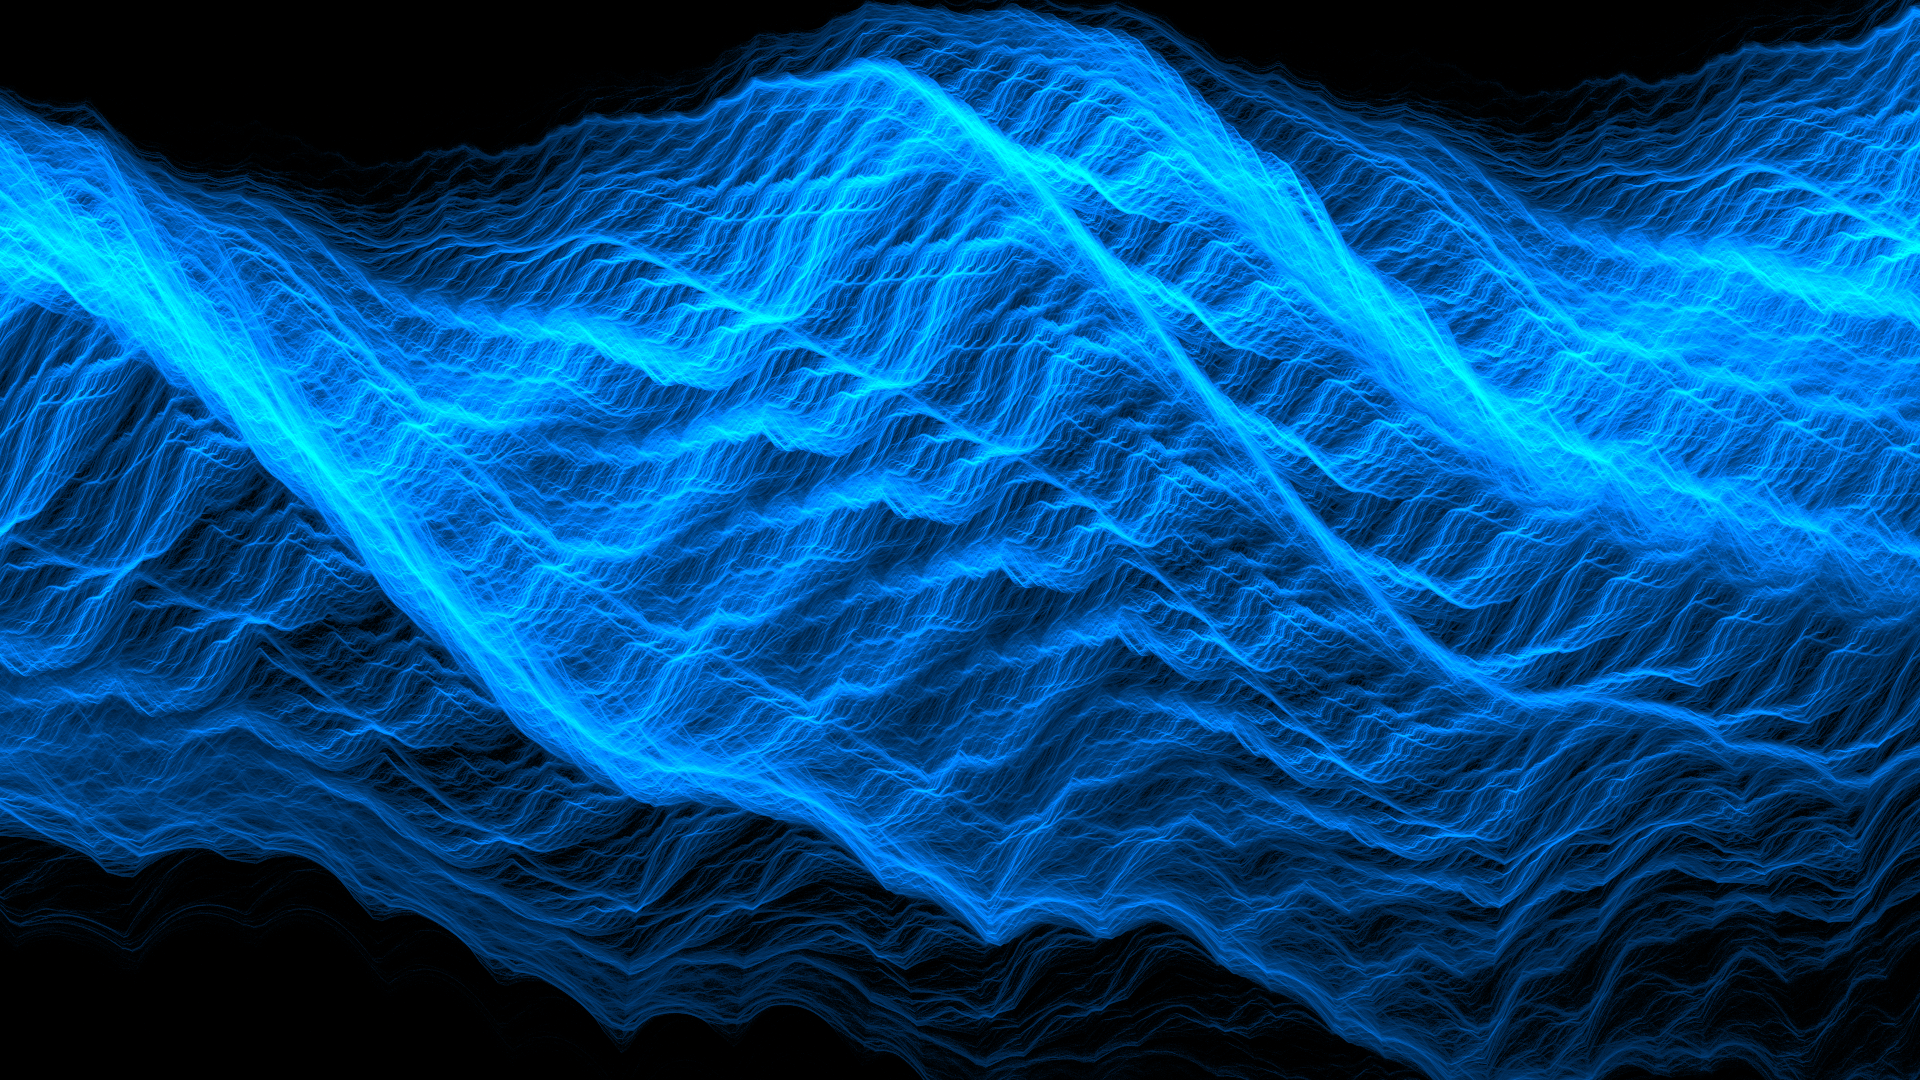 Abstract - Fractal  Wave Blue Wallpaper